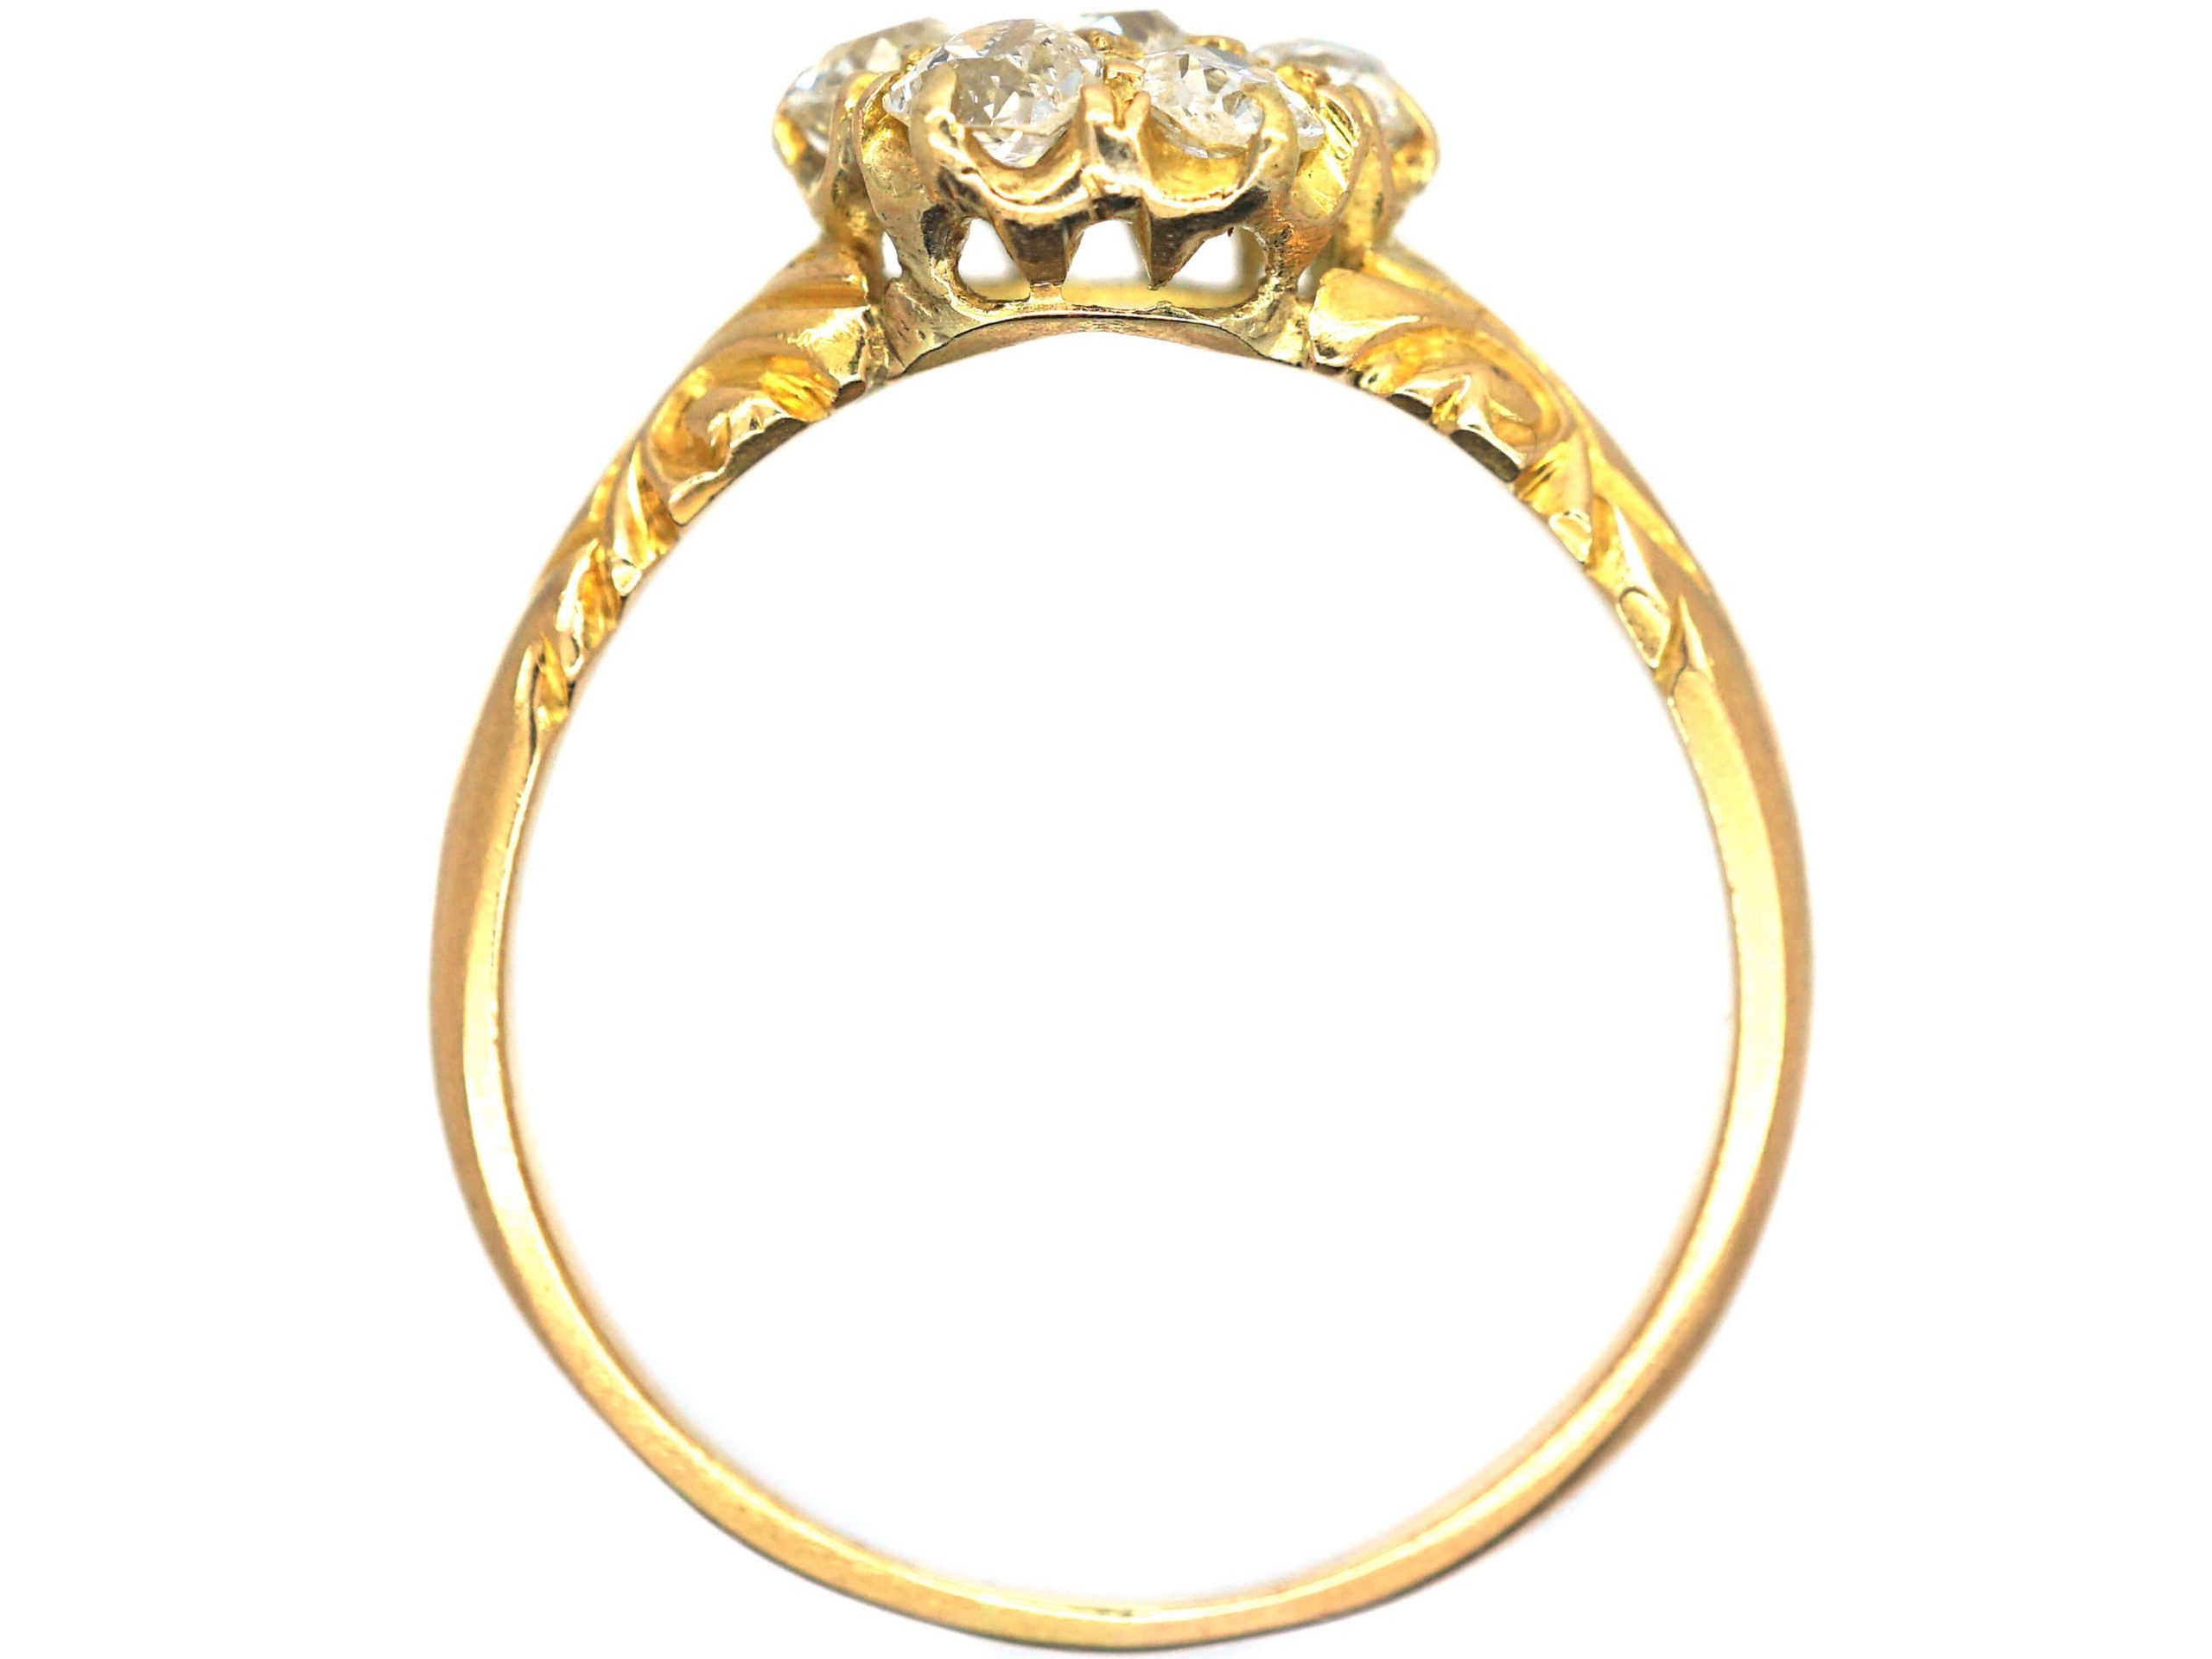 Edwardian 18ct Gold & Diamond Cluster Ring with Ornate Shoulders